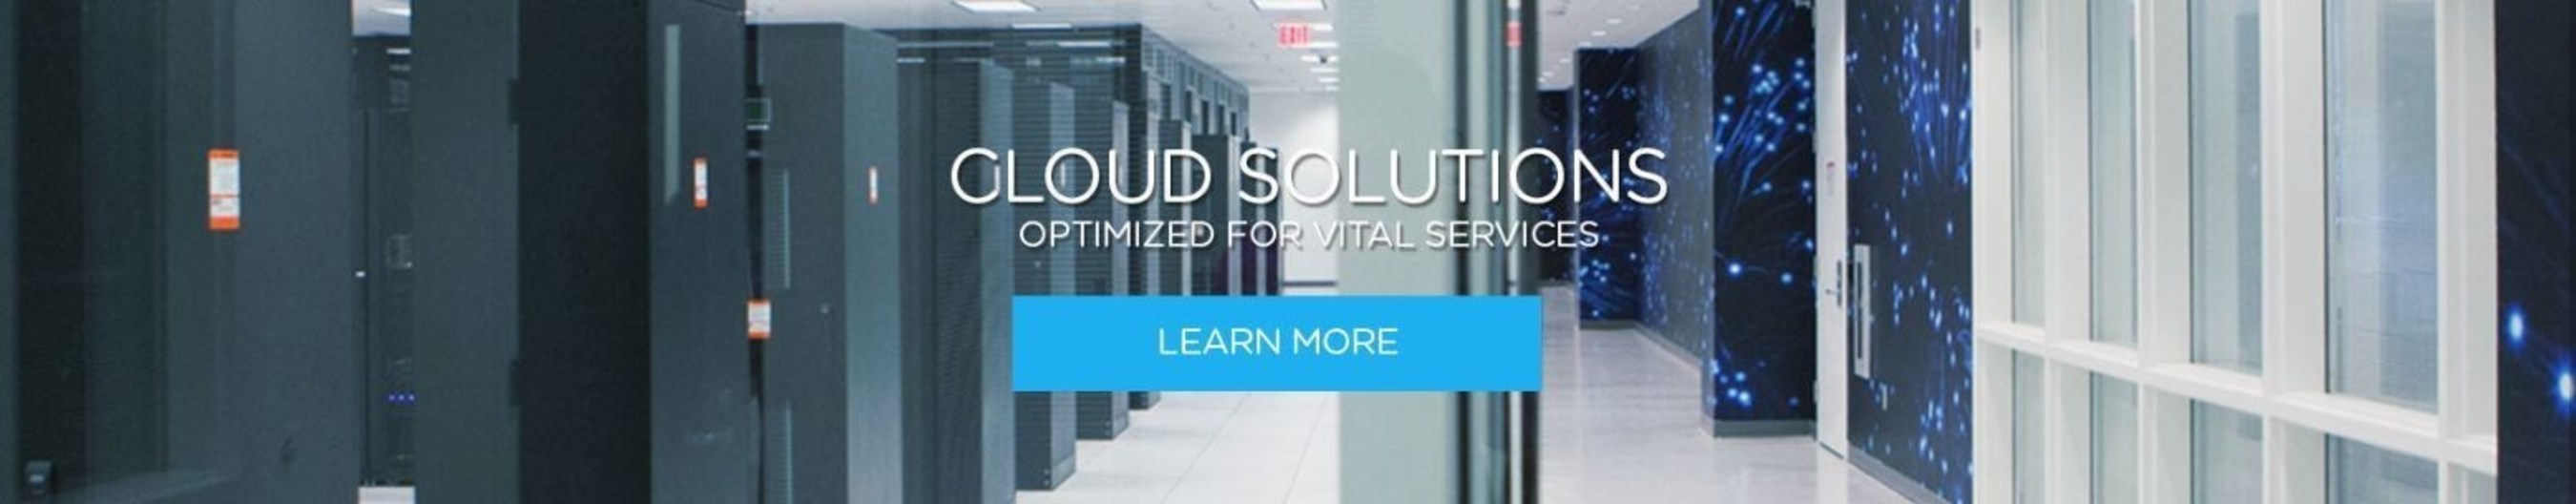 C Spire Business Solutions(TM) (CSBS) is now part of the VMware Hybrid Cloud Powered network after recent certification of the technology company's secure cloud services program by the virtualization giant.